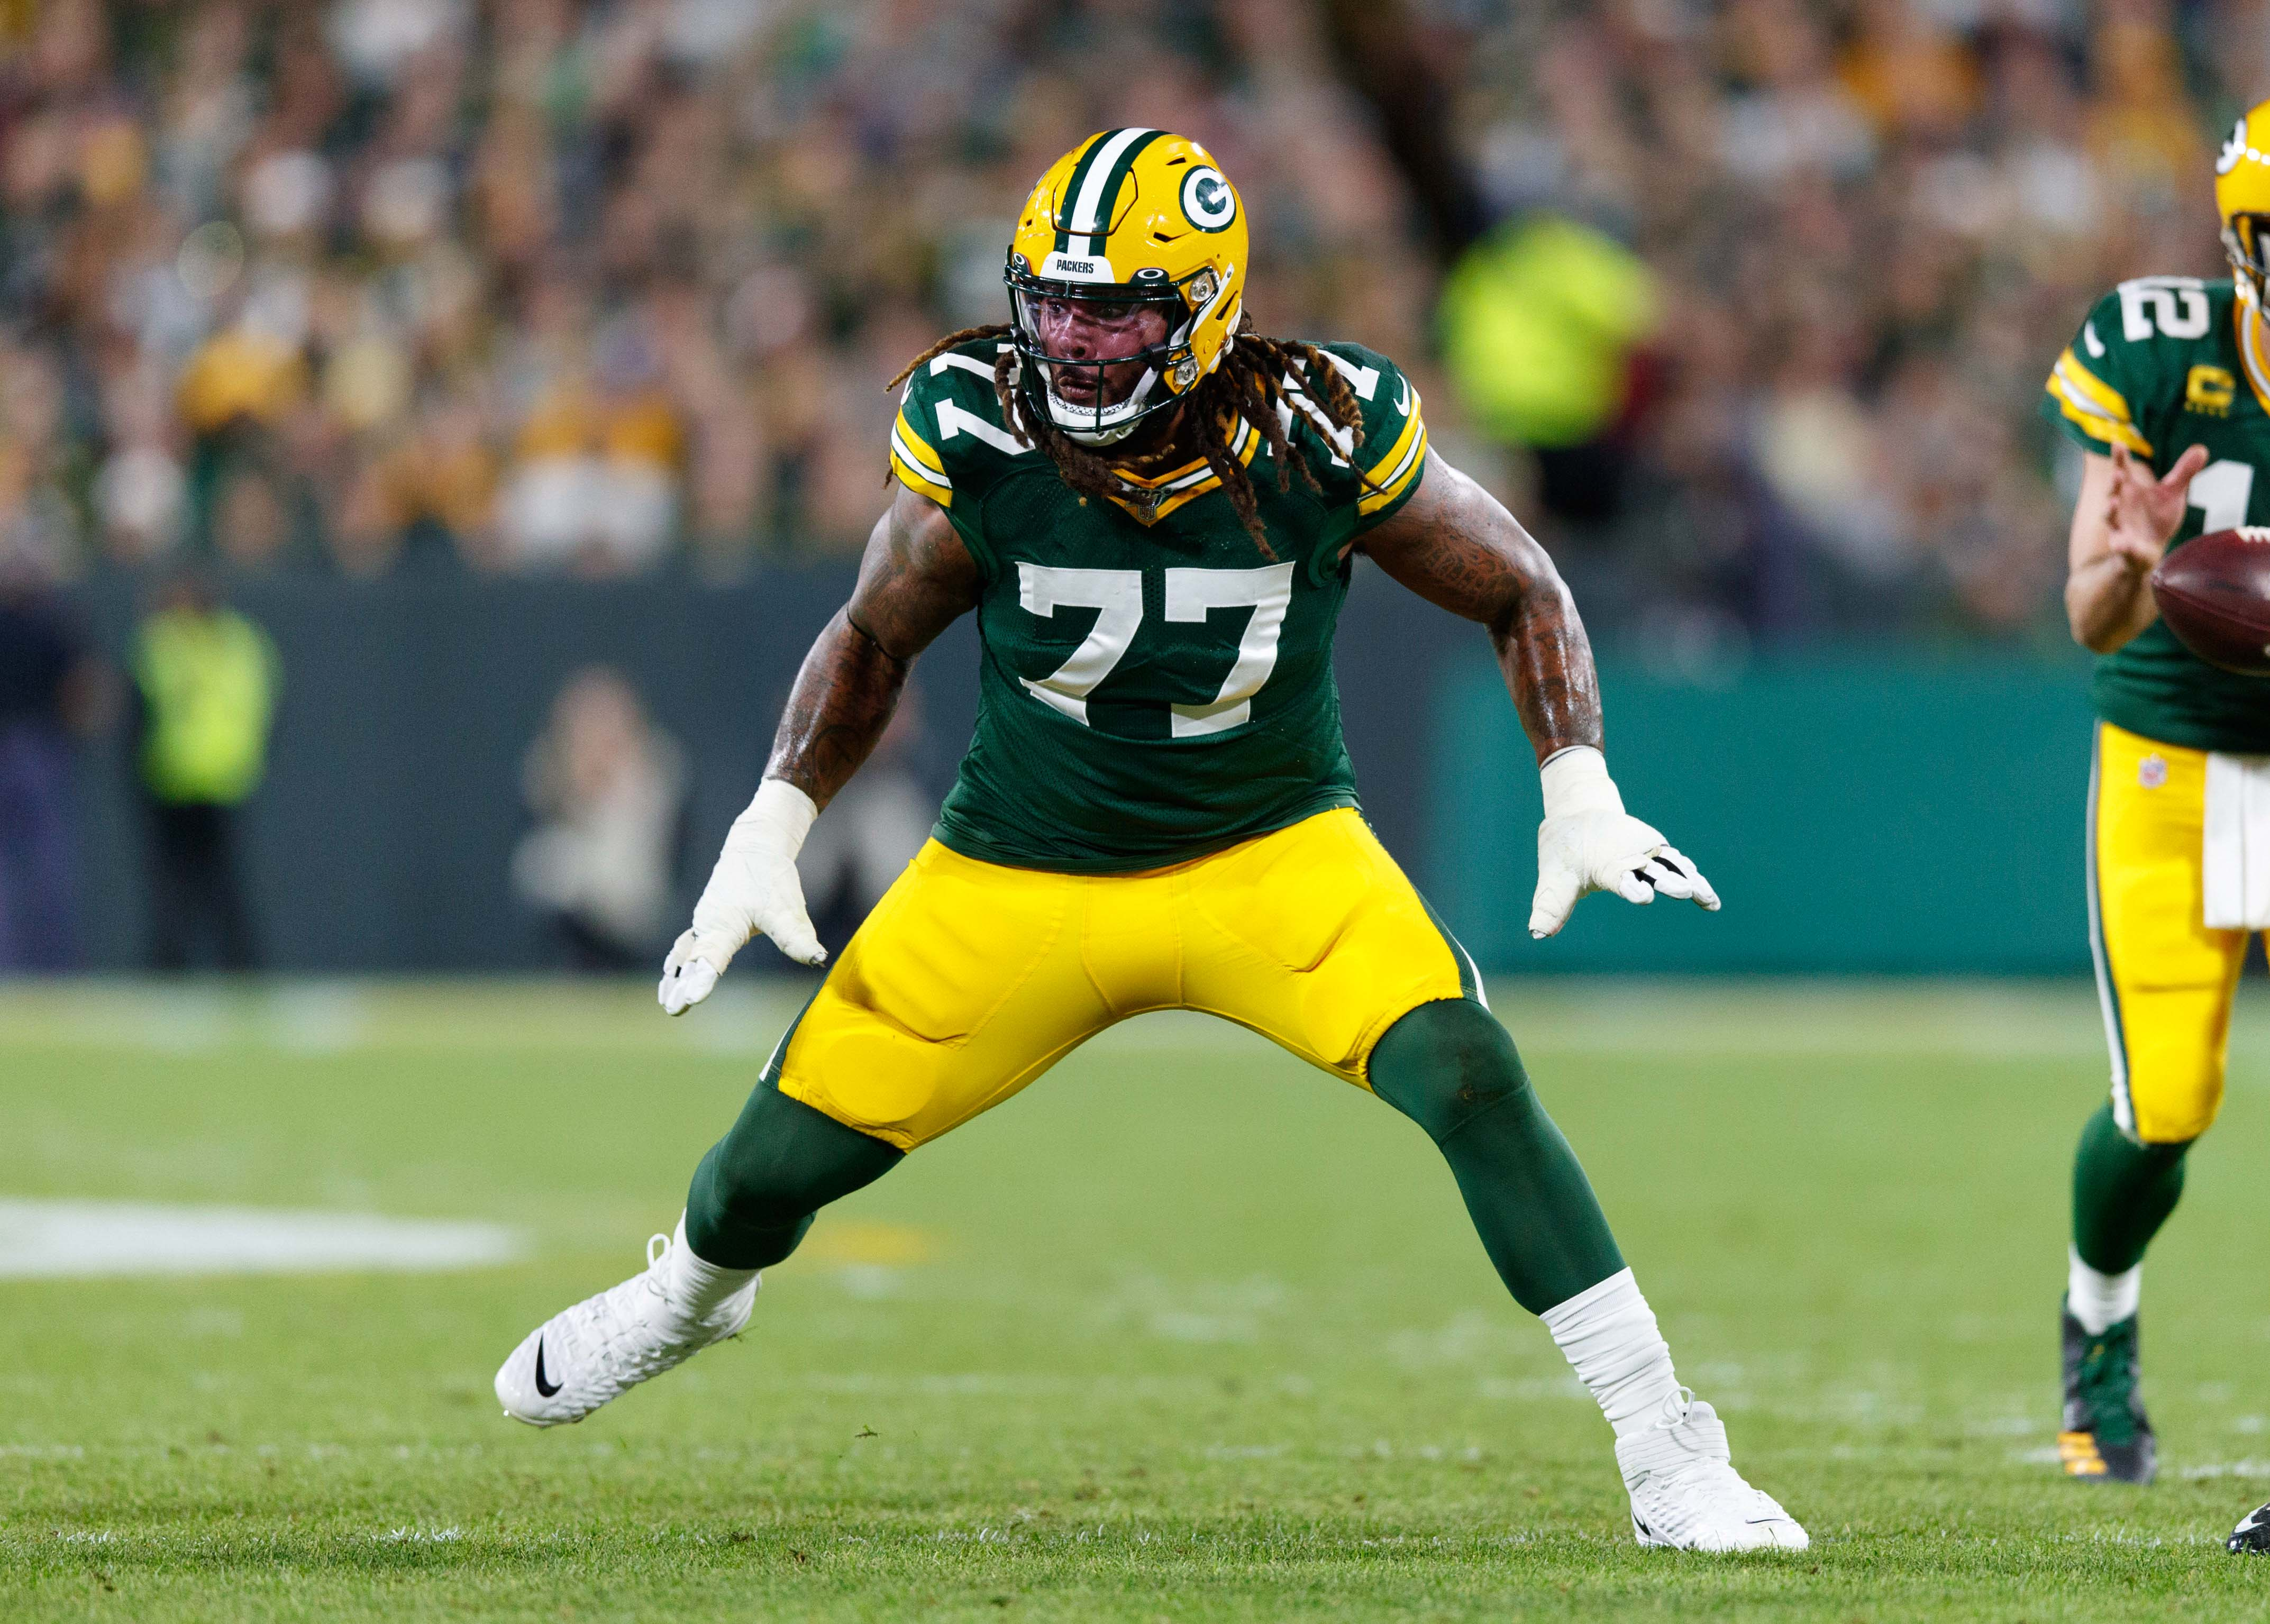 Packers OL Billy Turner Says So Much in Just a Few Words